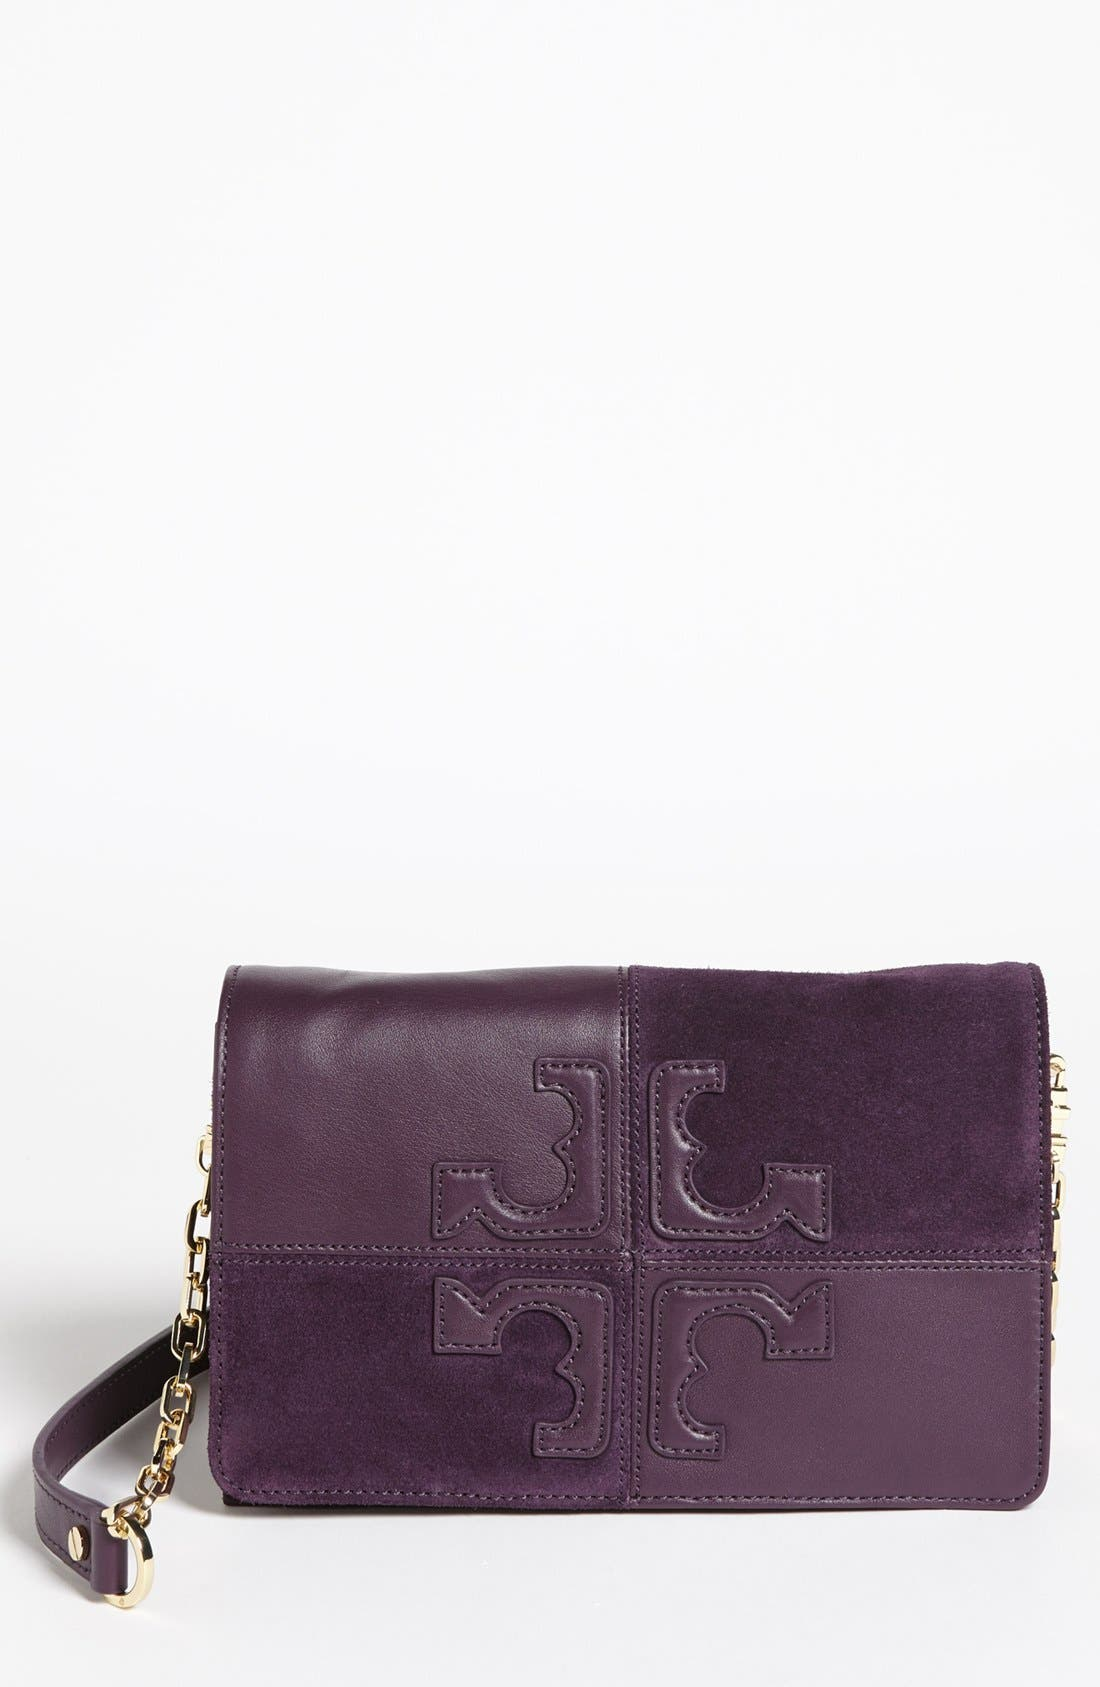 Alternate Image 1 Selected - Tory Burch 'Natalie' Crossbody Bag